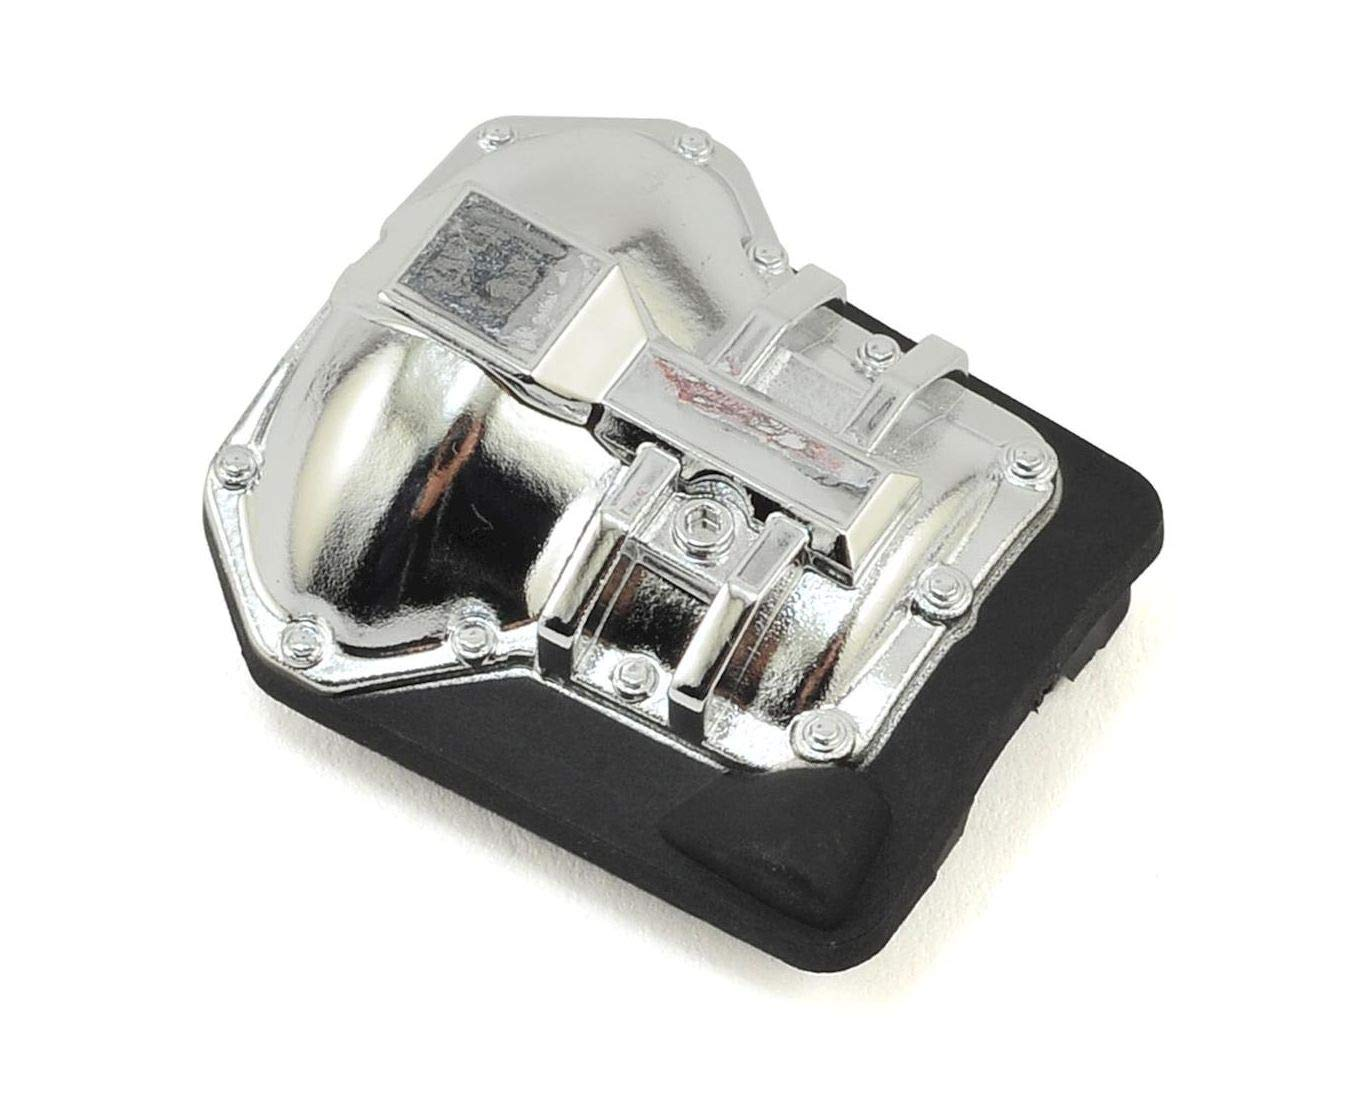 tr8280X TRA8280X TTraxxass TRX-4 Max 47% OFF Chrome Cover tra Selling and selling Differential